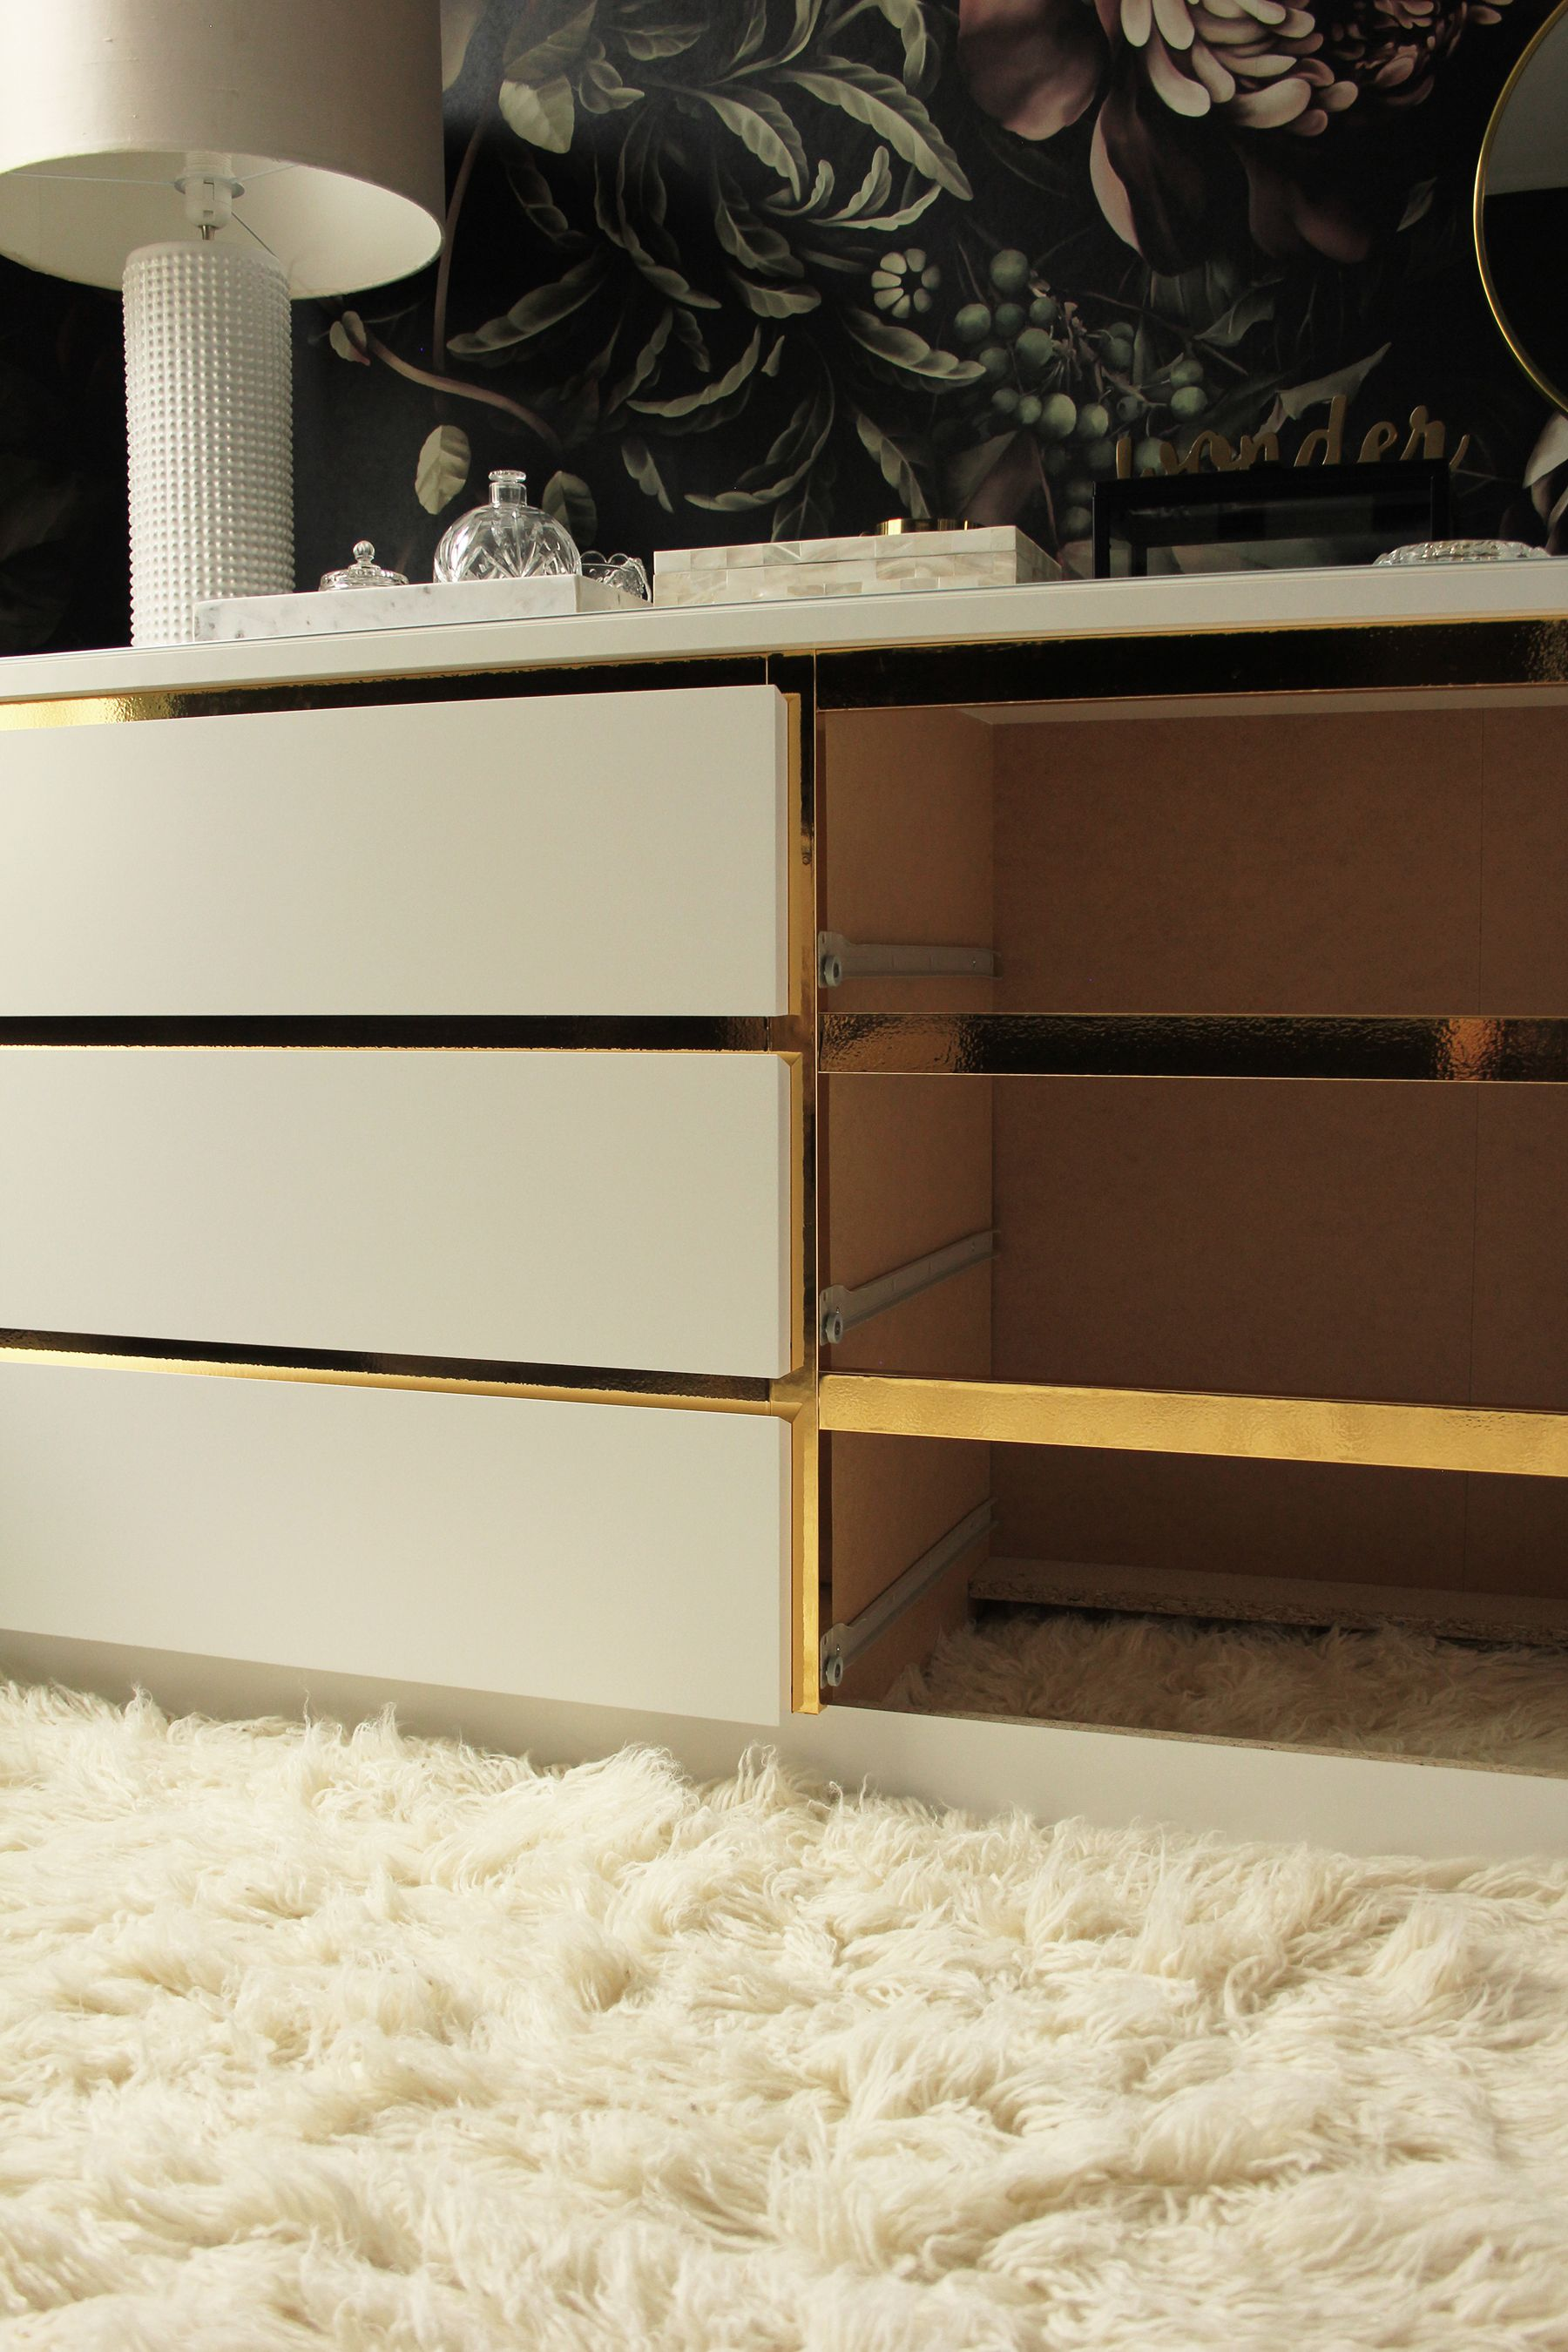 preciously me blog diy ikea hack customize and glamorize a malm dresser with gold contact. Black Bedroom Furniture Sets. Home Design Ideas